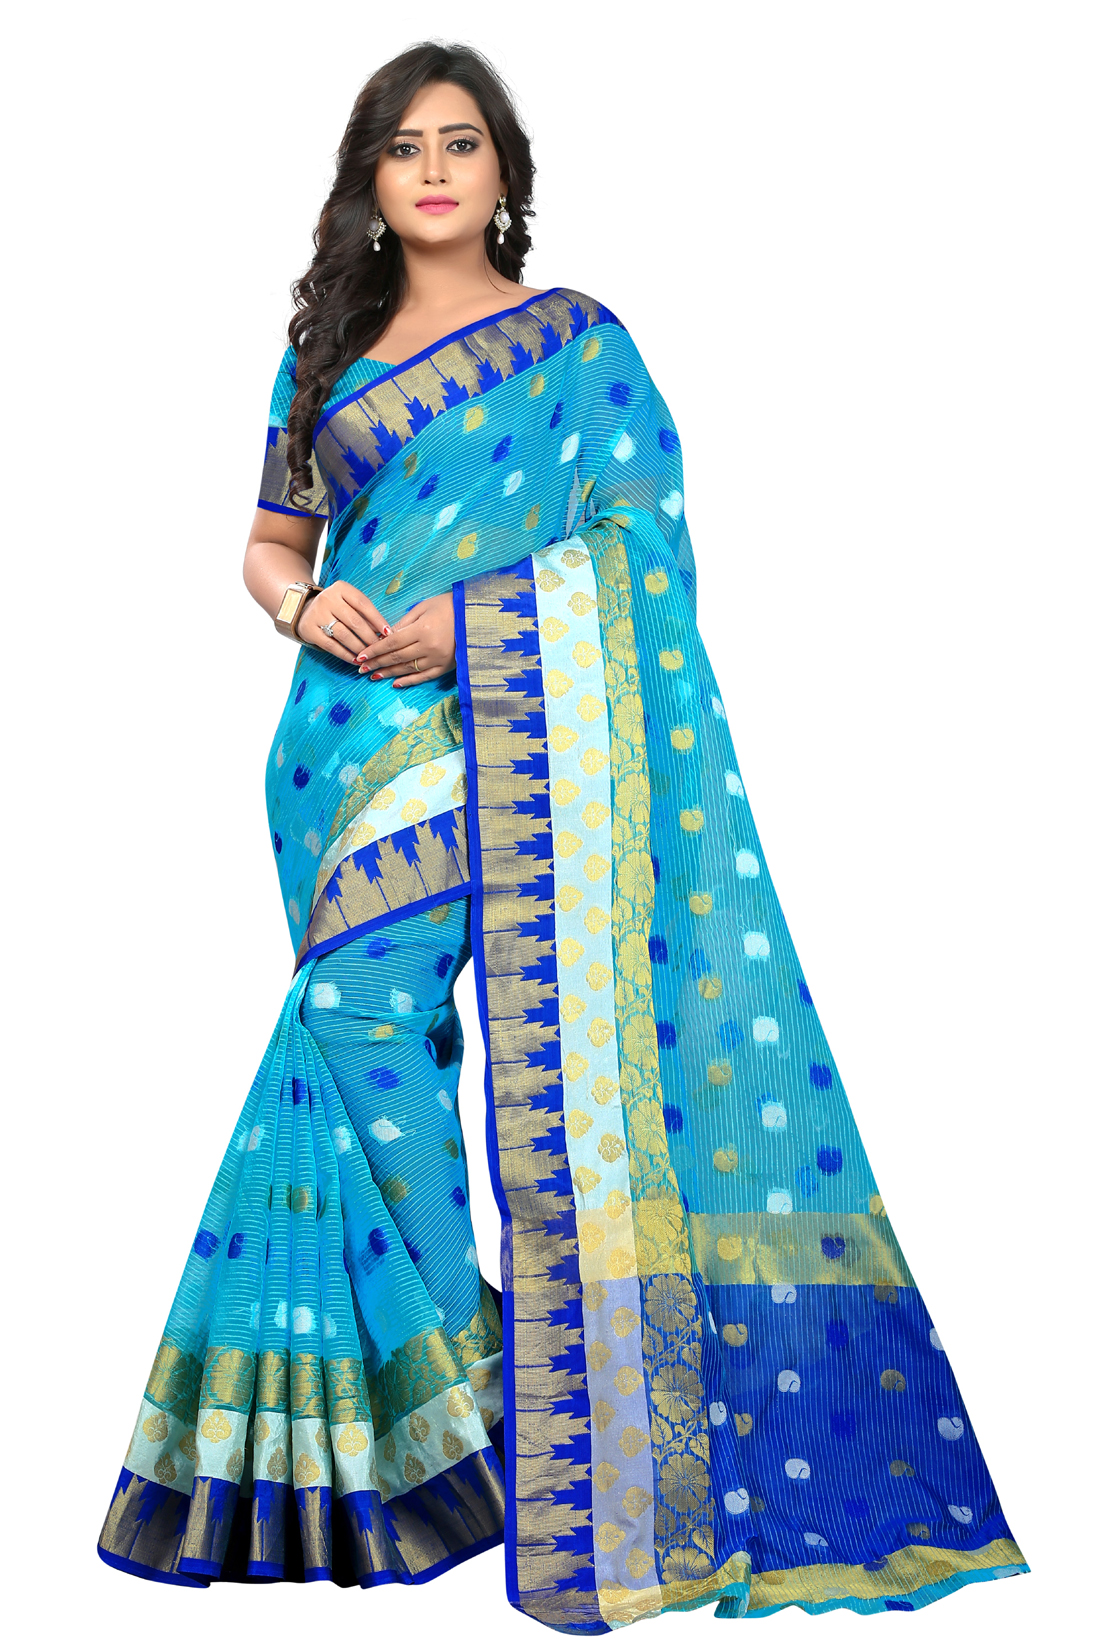 Latest BlueJacquard Saree With Blouse